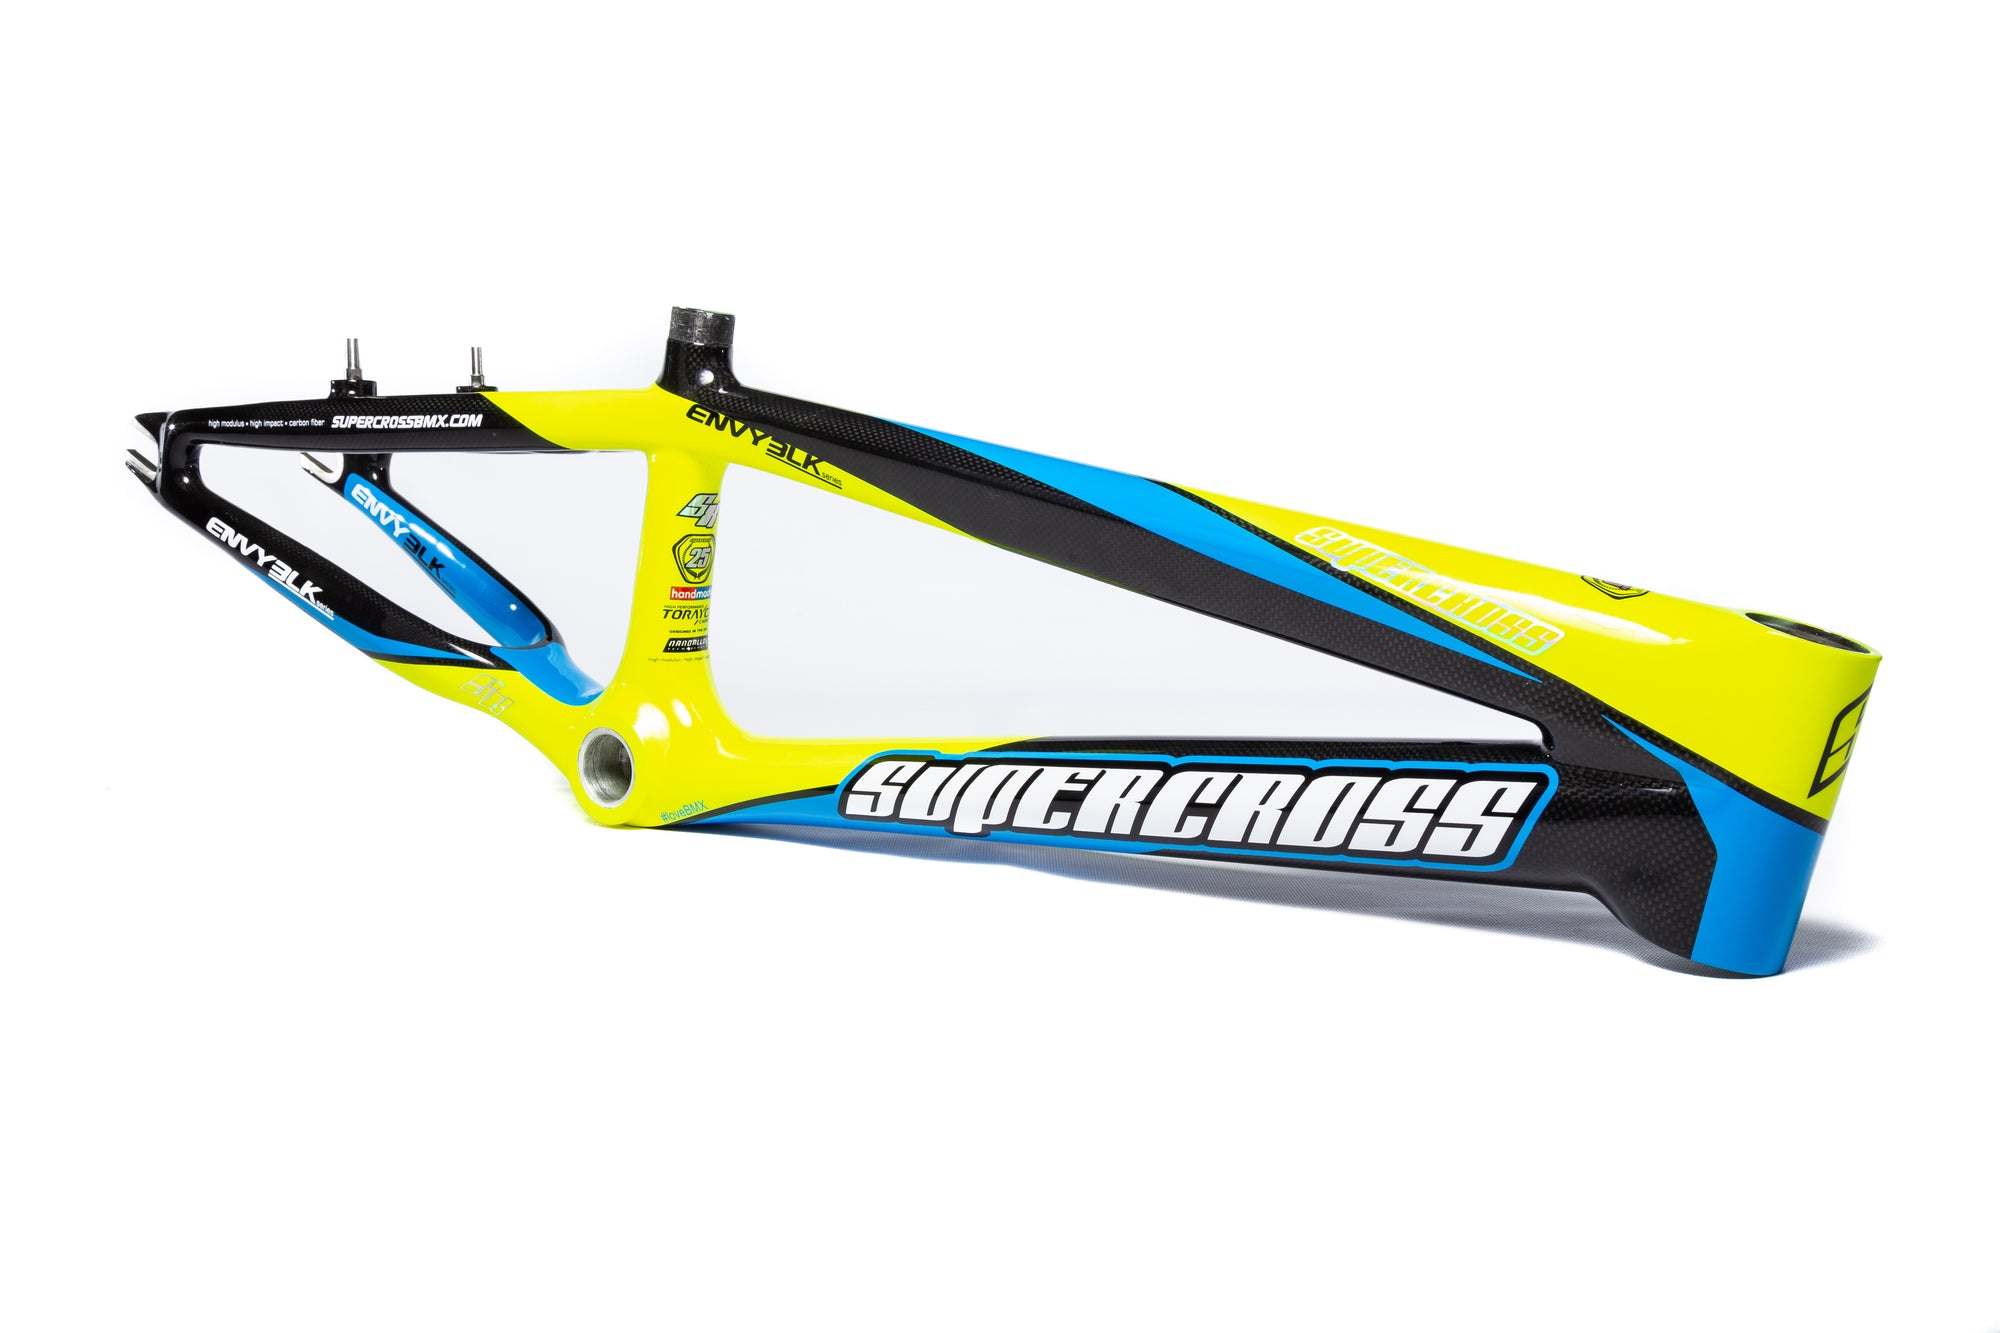 Details about  /270mm Carbon Fiber Frame with Cover